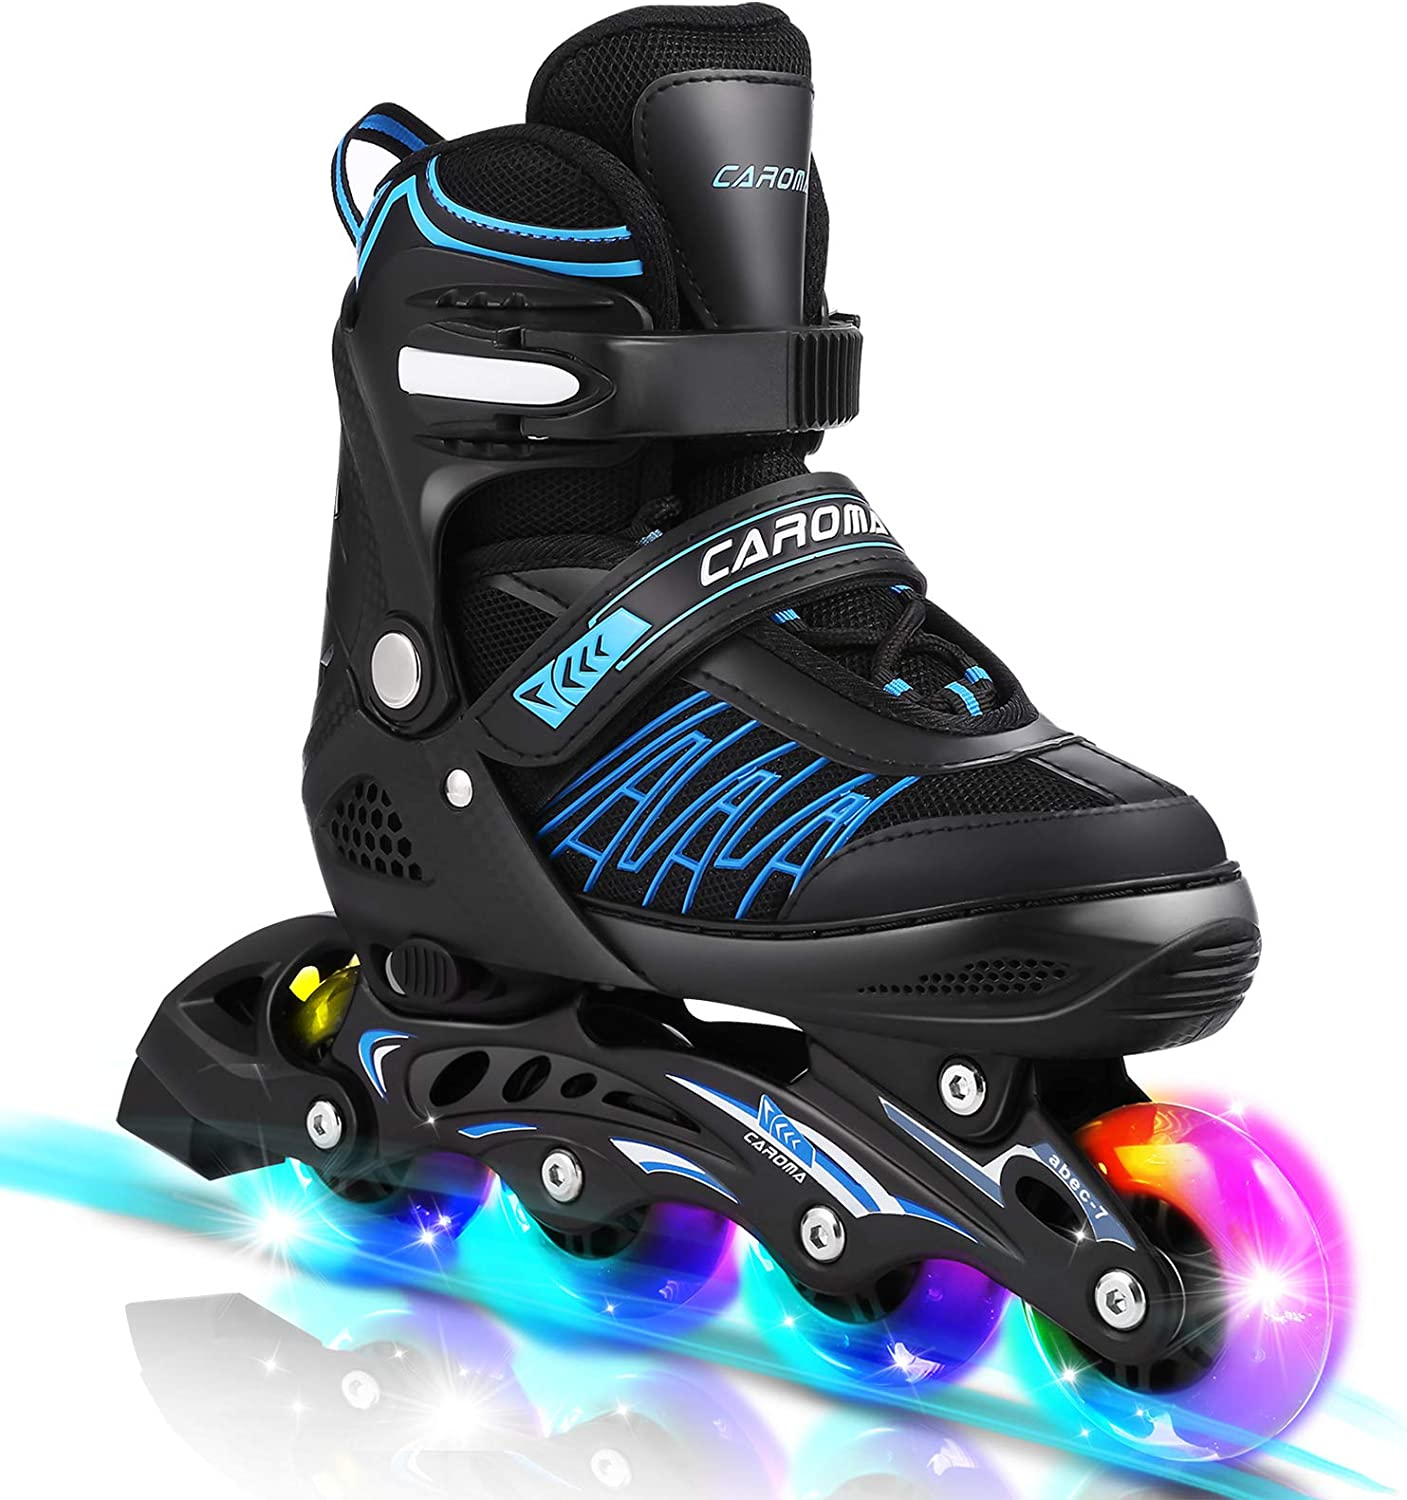 Caroma Inline Skates Women with Max 40% OFF 8 Opening large release sale LED Wheels Outdoor 4 Up Lights